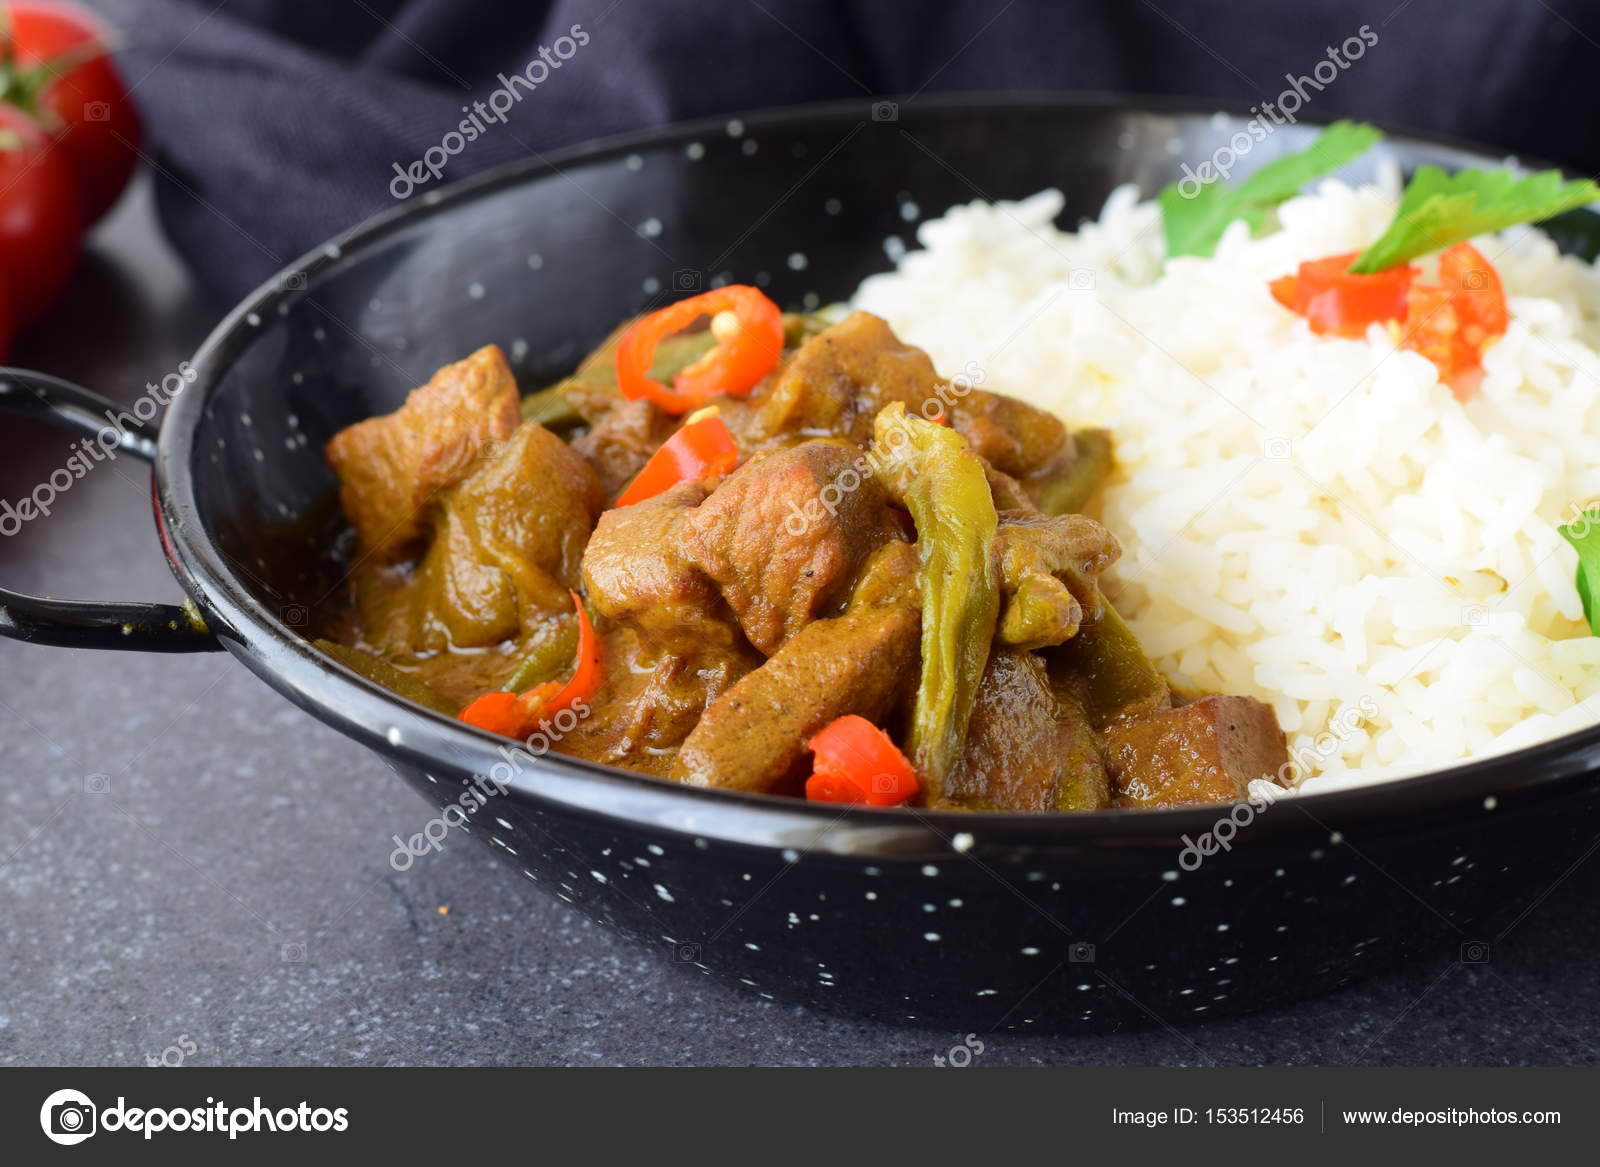 Pork In Spicy Curry Sause With Eggplant And Green Beans, Served With Cooked  Rice In A Black Metal Bowl On A Grey Abstract Background. Home Cooking.